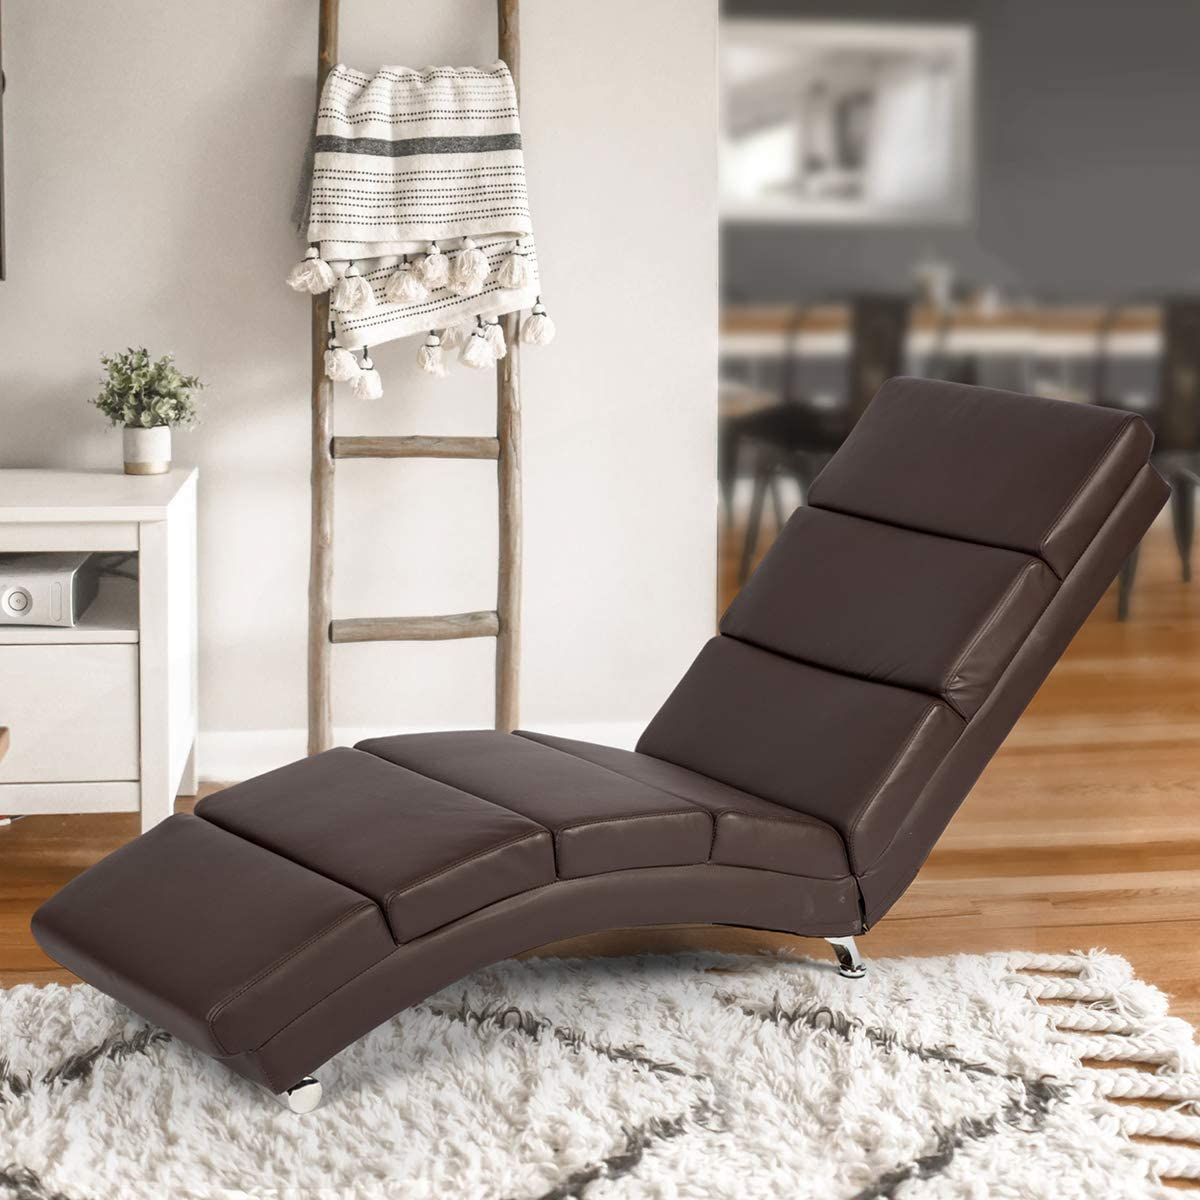 - Amazon.com: YOLENY Synthetic Leather Chaise Lounge With Massage